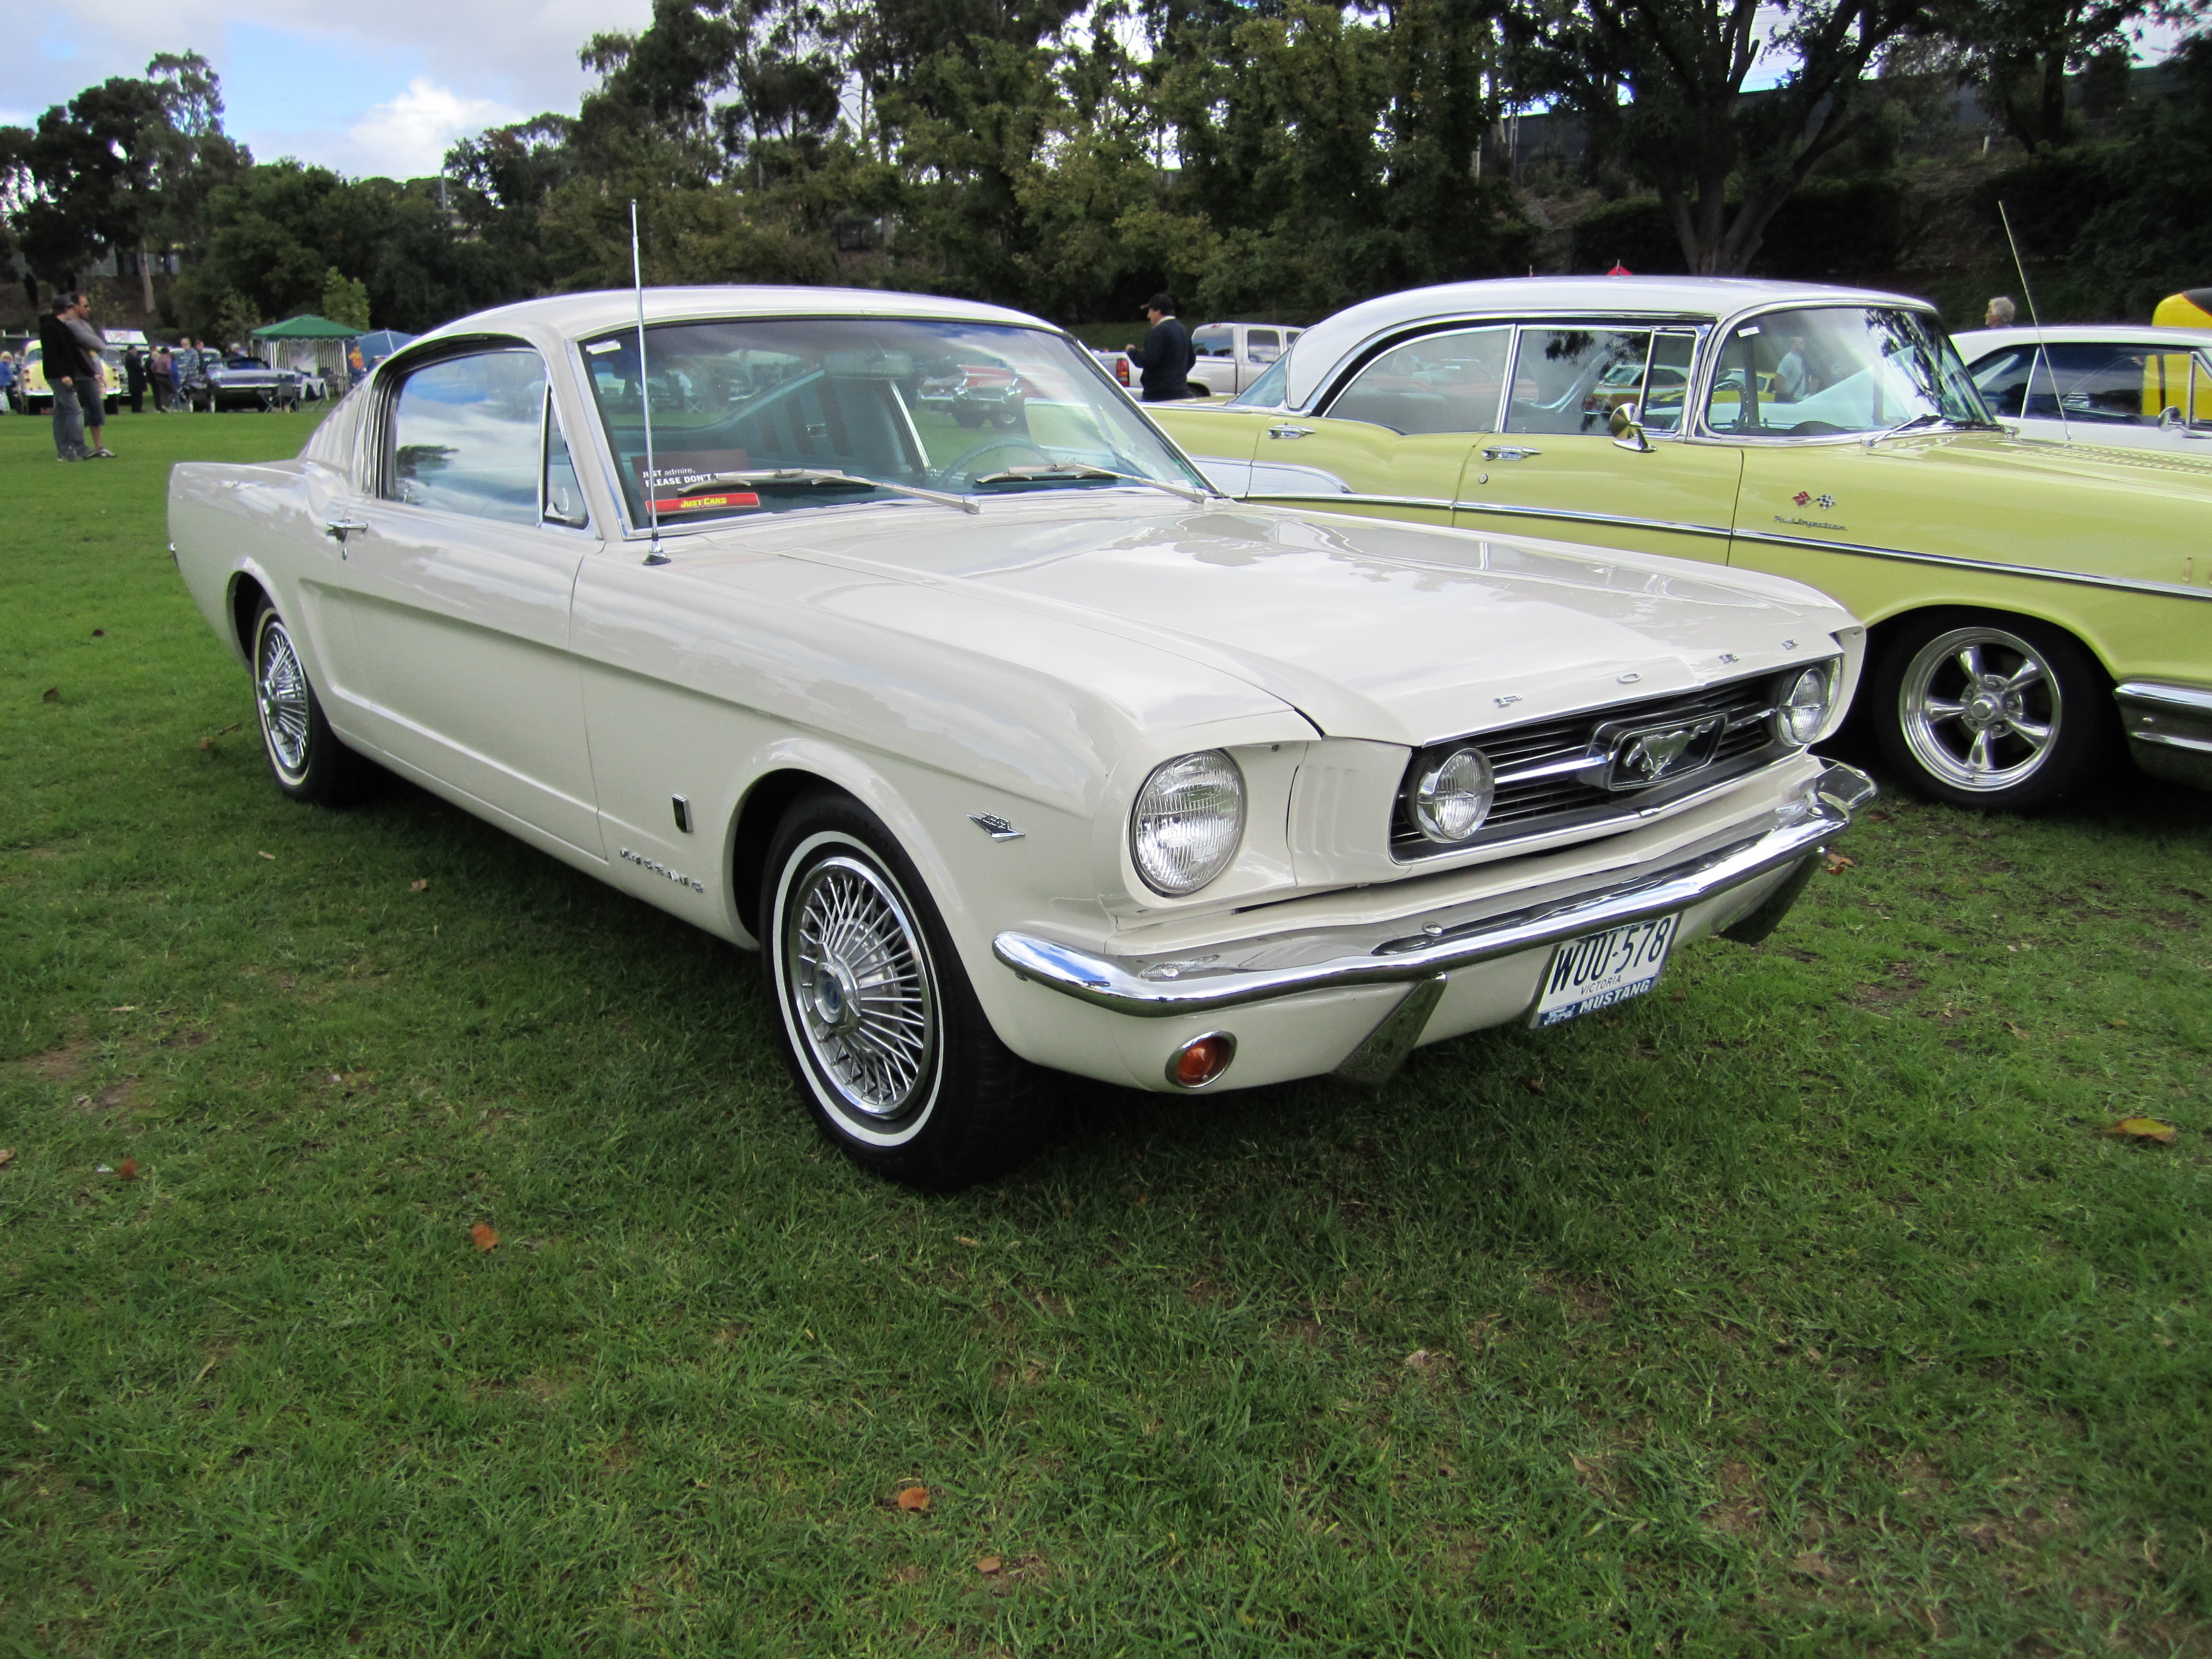 File Ford Mustang Gt Fastback 1966 Jpg Wikimedia Commons